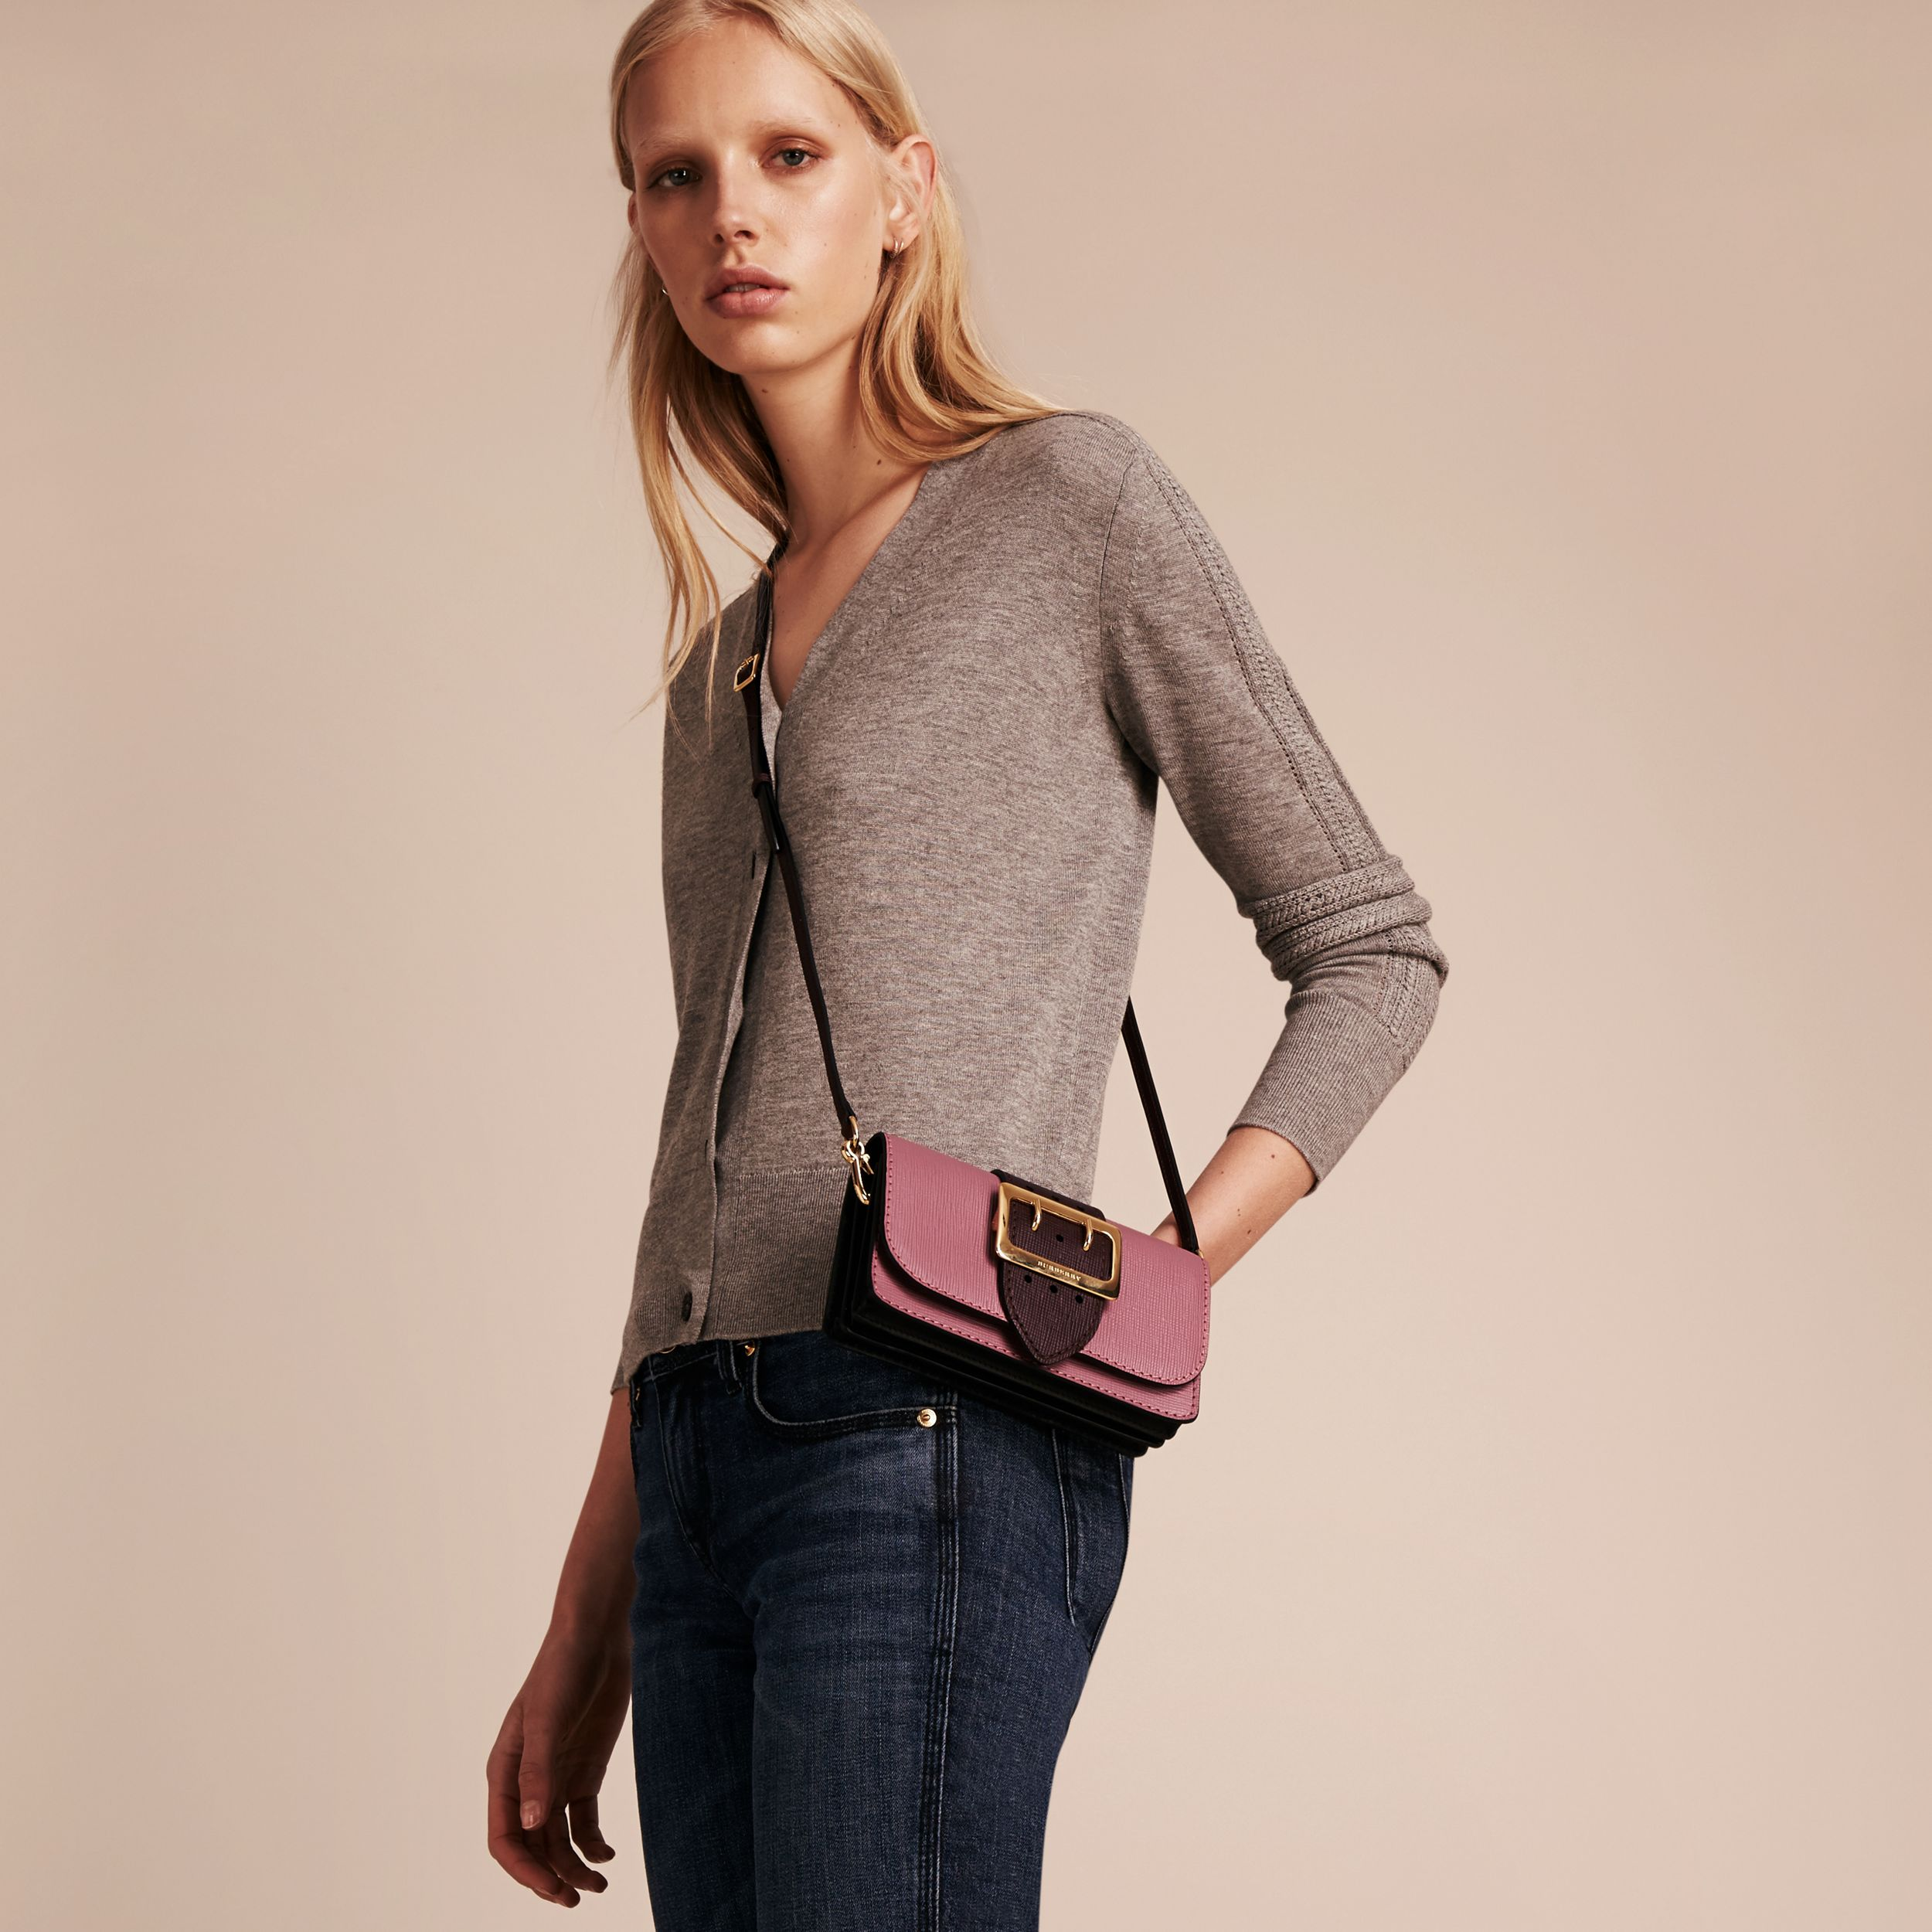 The Small Buckle Bag in Textured Leather in Dusky Pink/ Burgundy | Burberry United States - 3